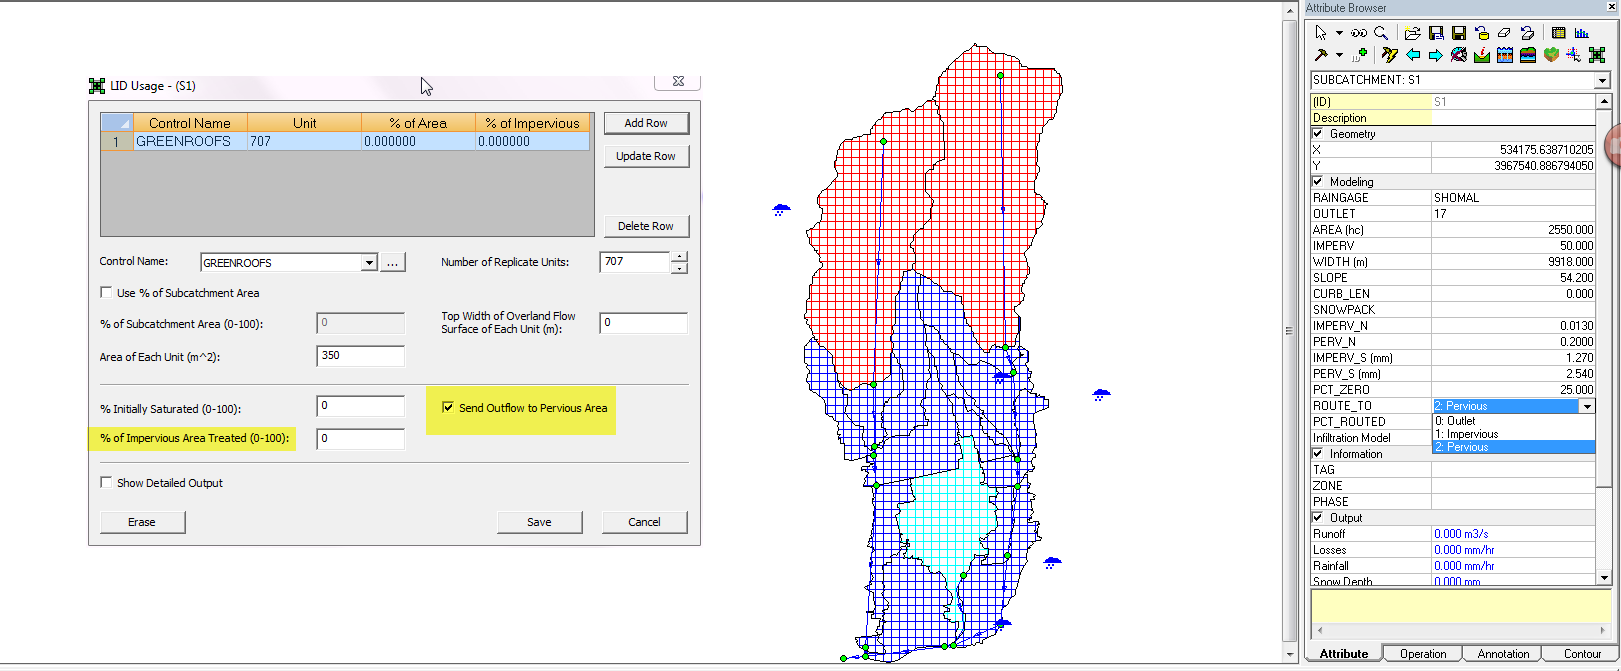 What are the Options for LID Inflow and Outflow In SWMM 5? – Blogs ...